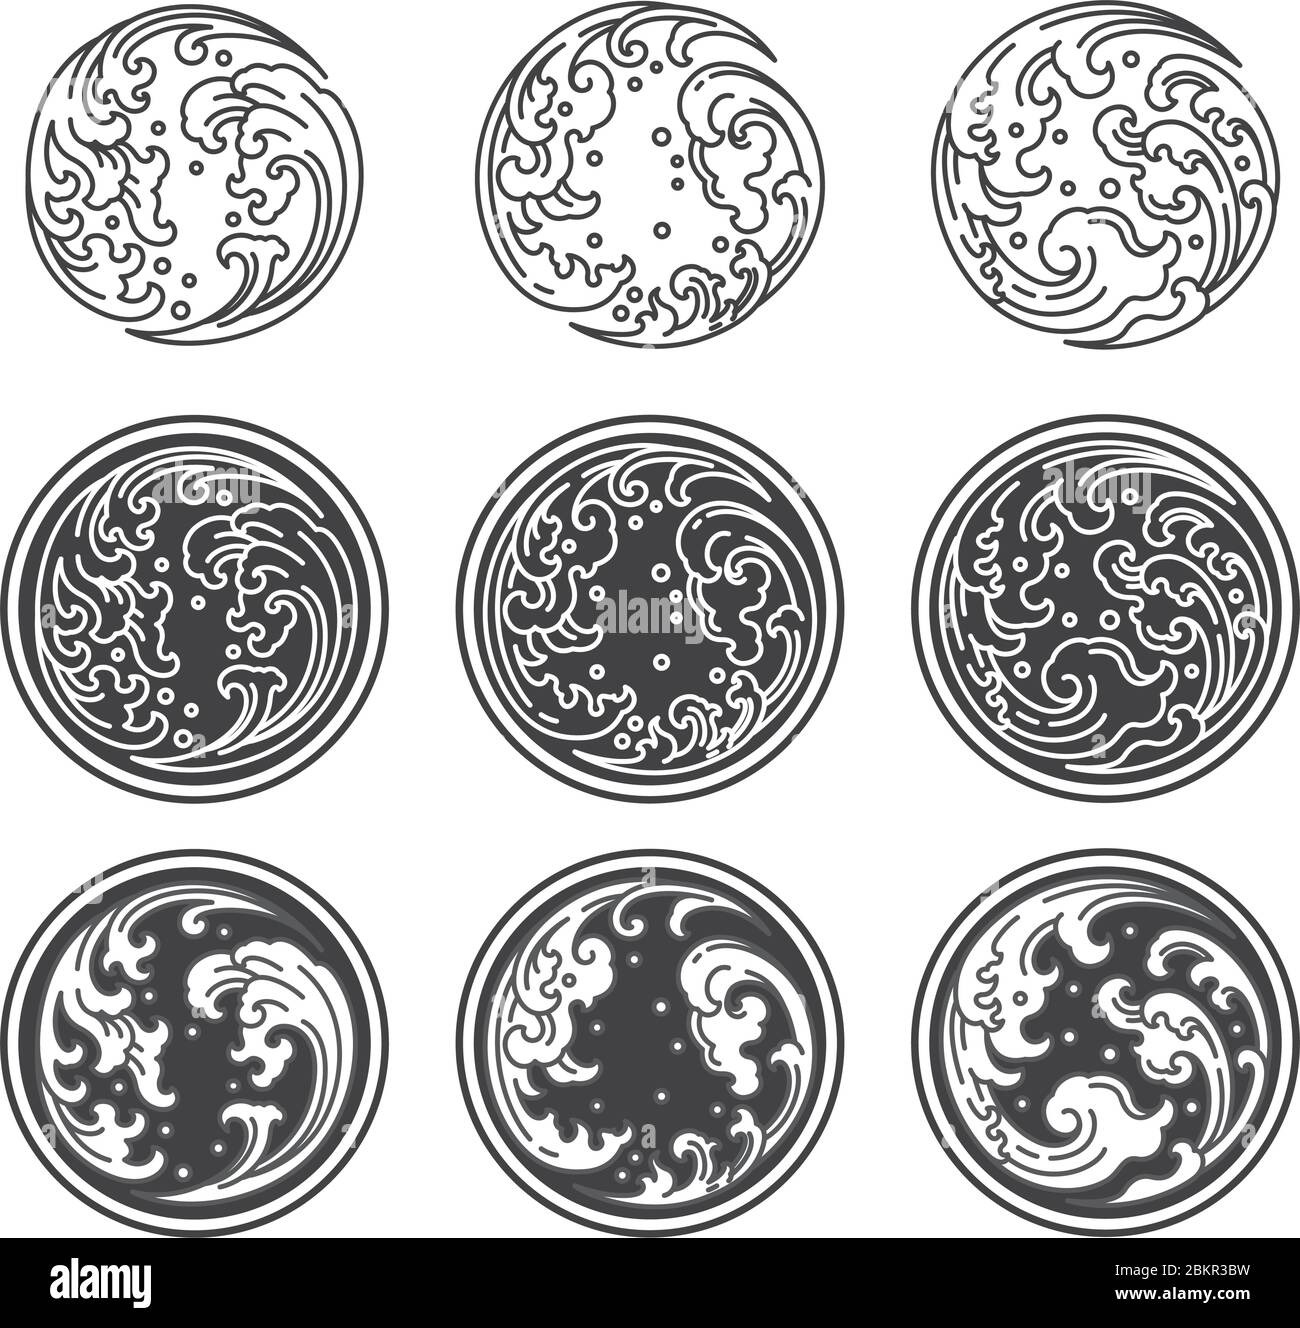 Oriental water wave in Yin Yang circle shape. Outline and filled with gray. Symbolic of opposite. For concepted by Thai, Japanese, Chinese believable. Stock Vector